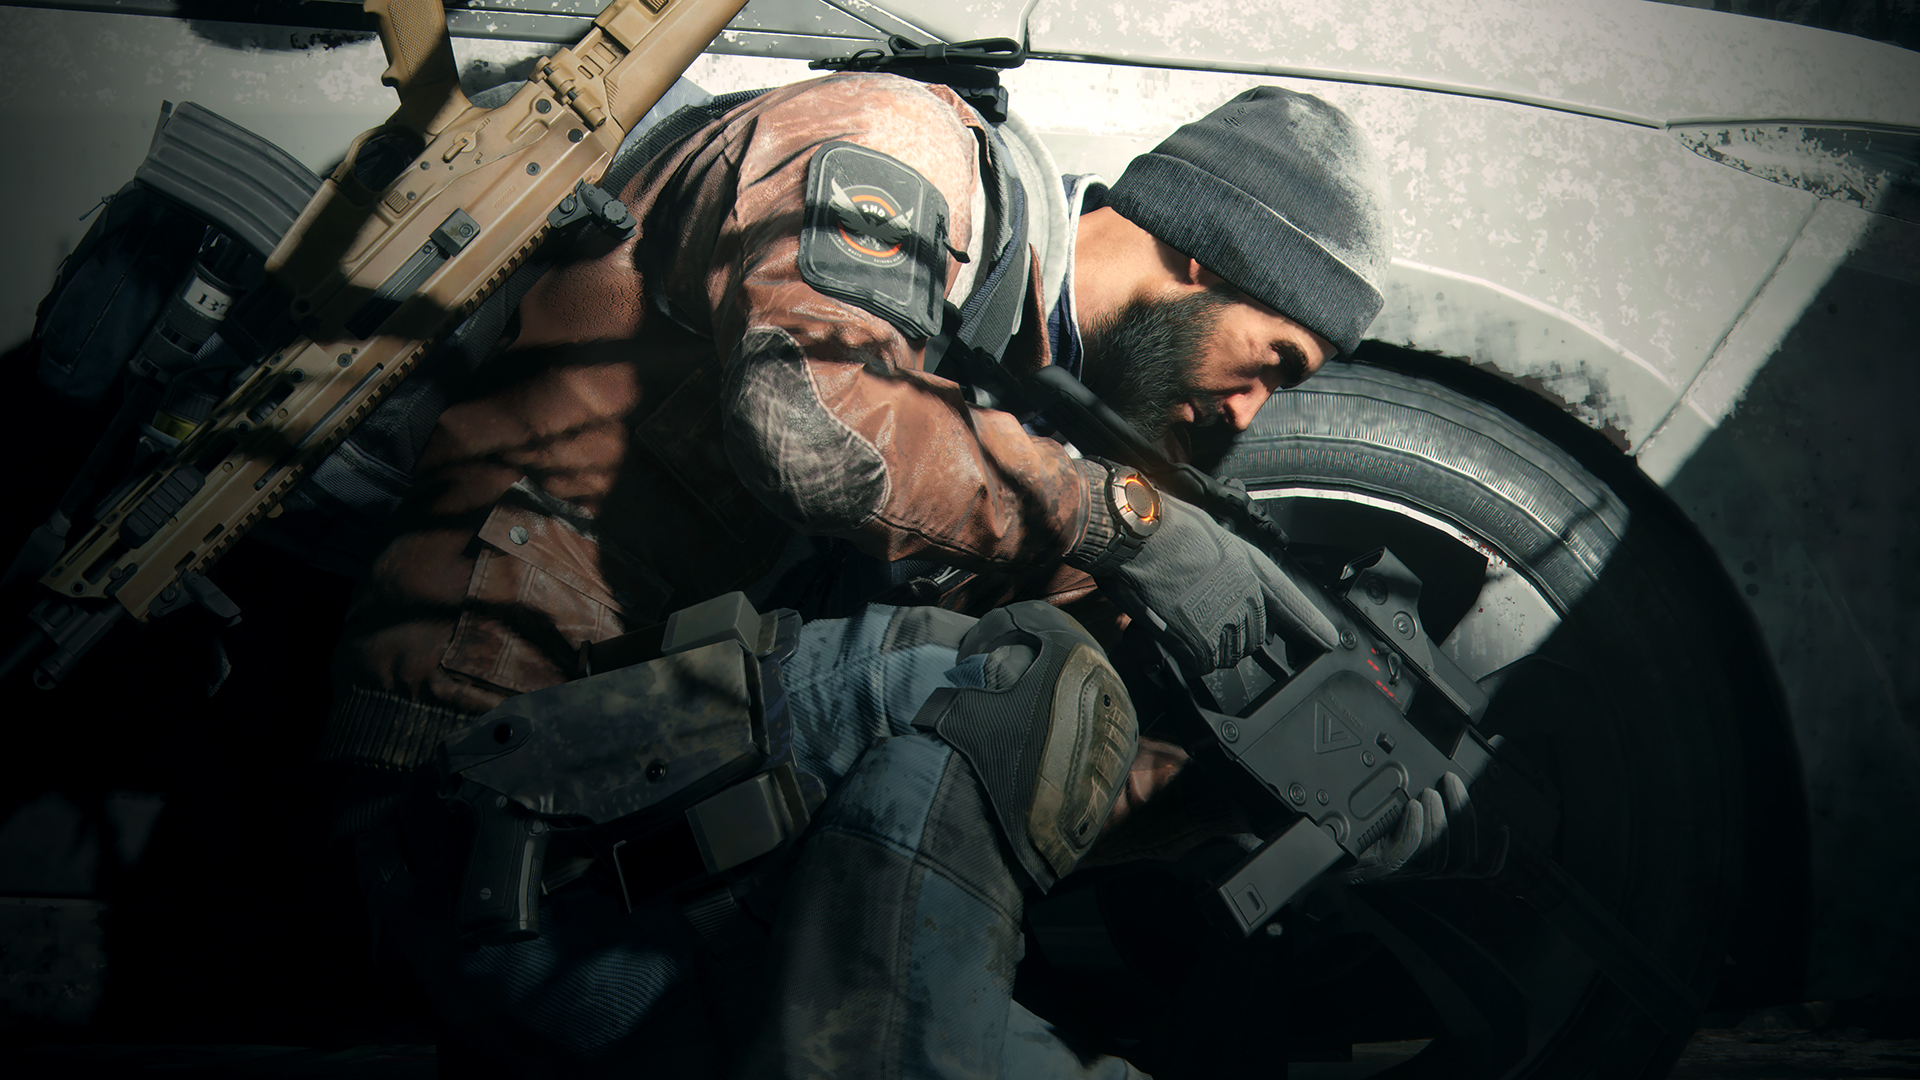 The Division is Ubisoft's online shooter due out later this year.